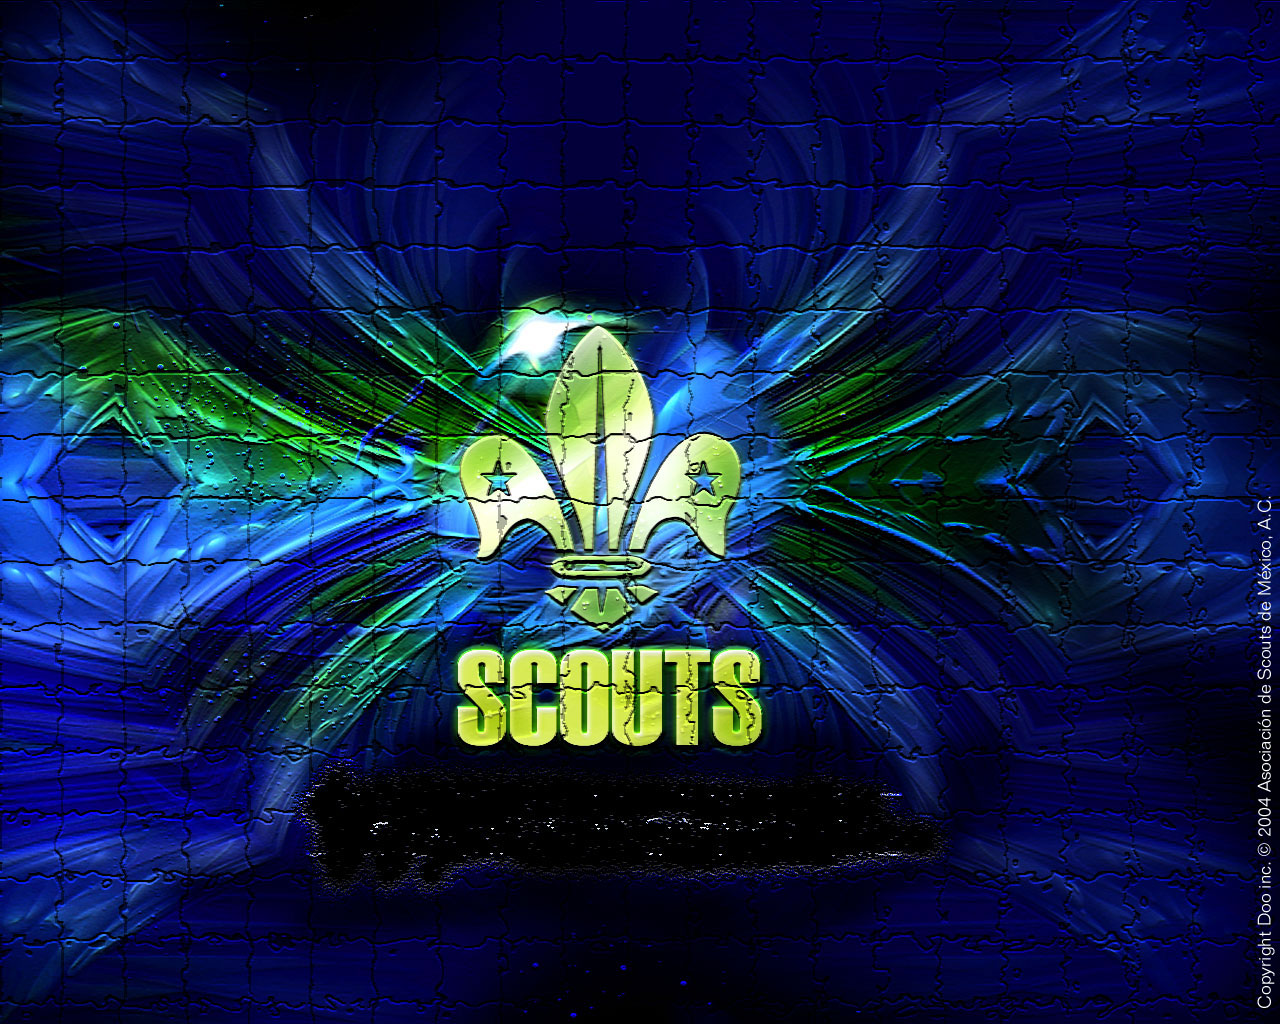 Boy Scout Wallpaper Backgrounds